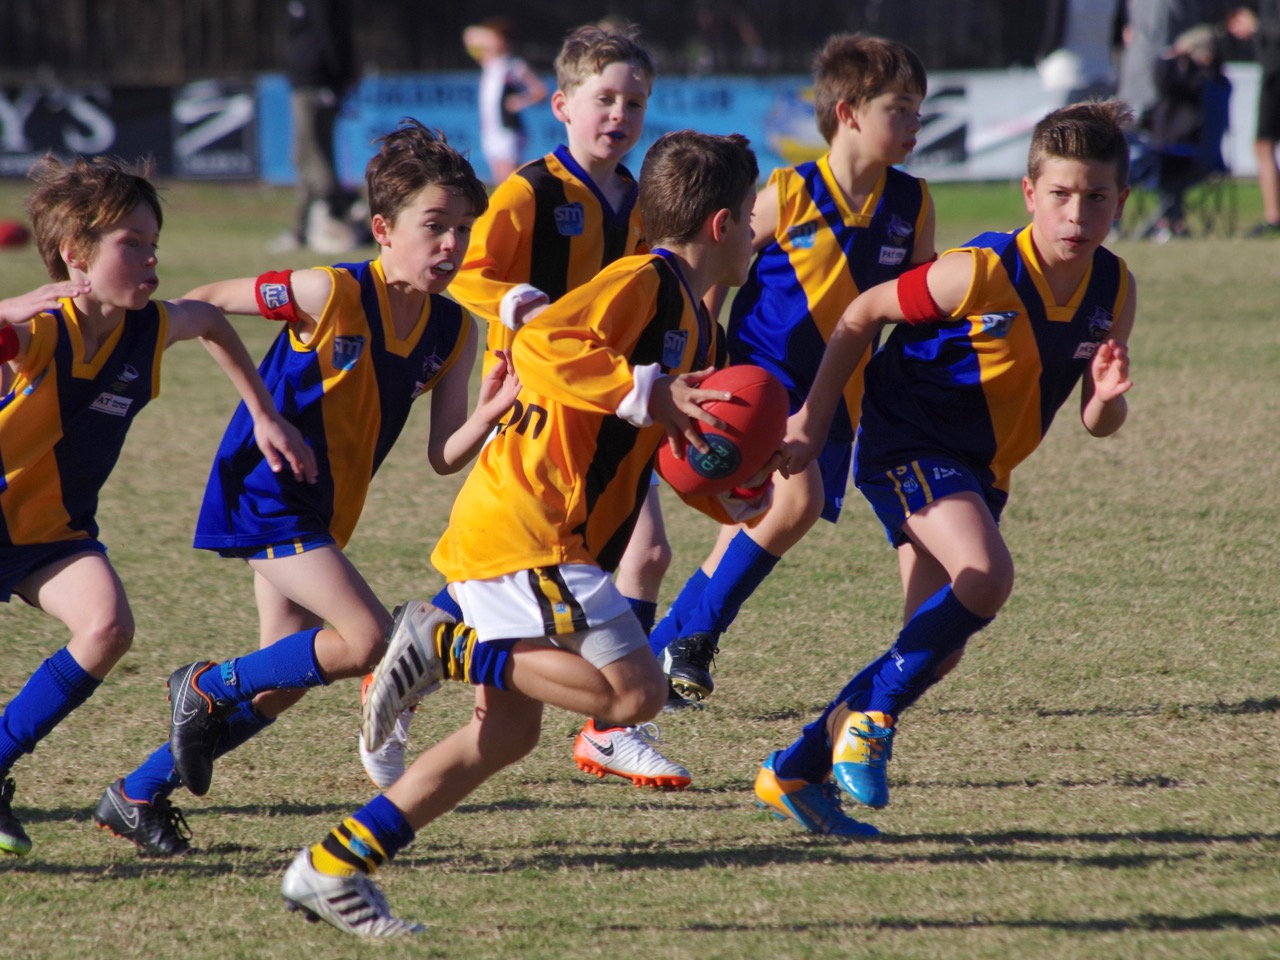 Values | East Sandringham Junior Football Club | Bayside footy | Aus Kick | Auskick | Boys football | girls football